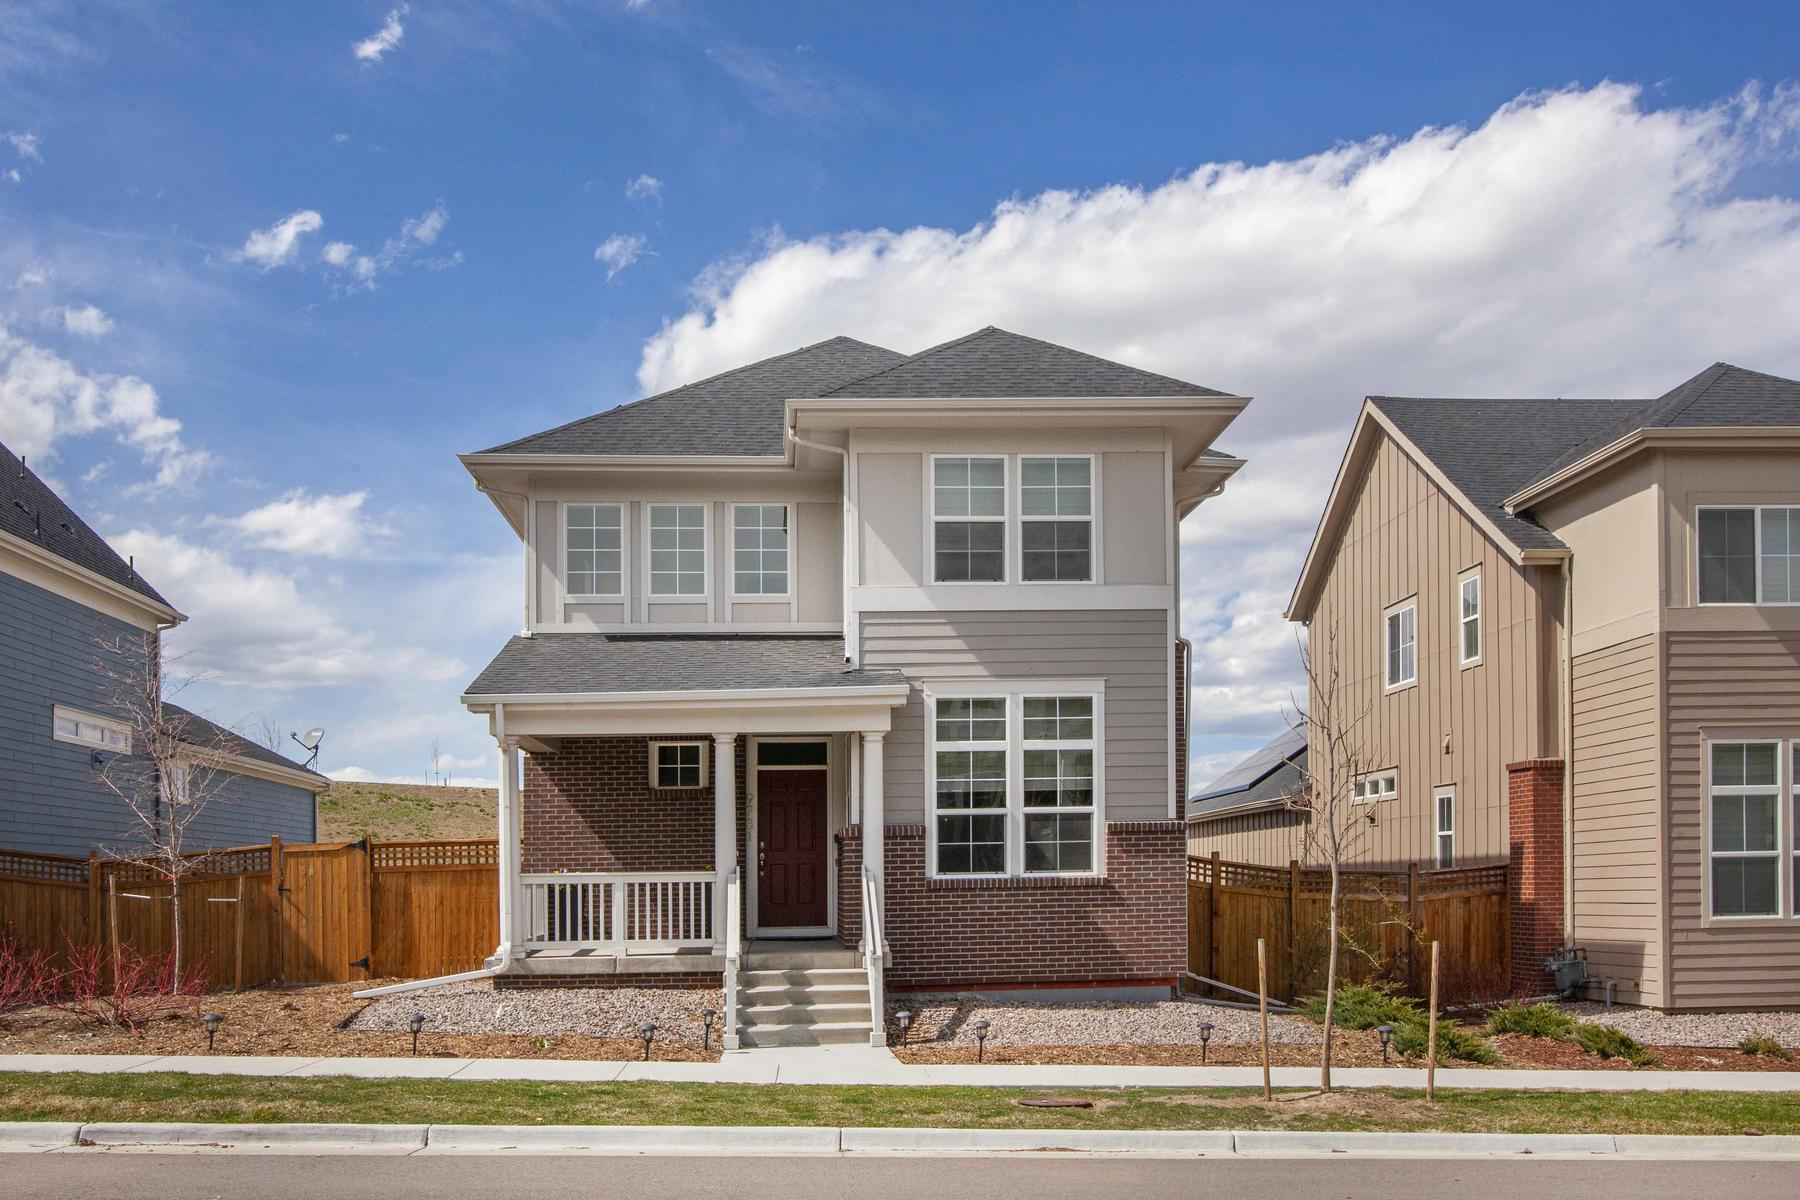 Single Family Homes for Active at Nearly New, Sunlight Filled, Energy Efficient Home 9731 Eaton Street Westminster, Colorado 80020 United States